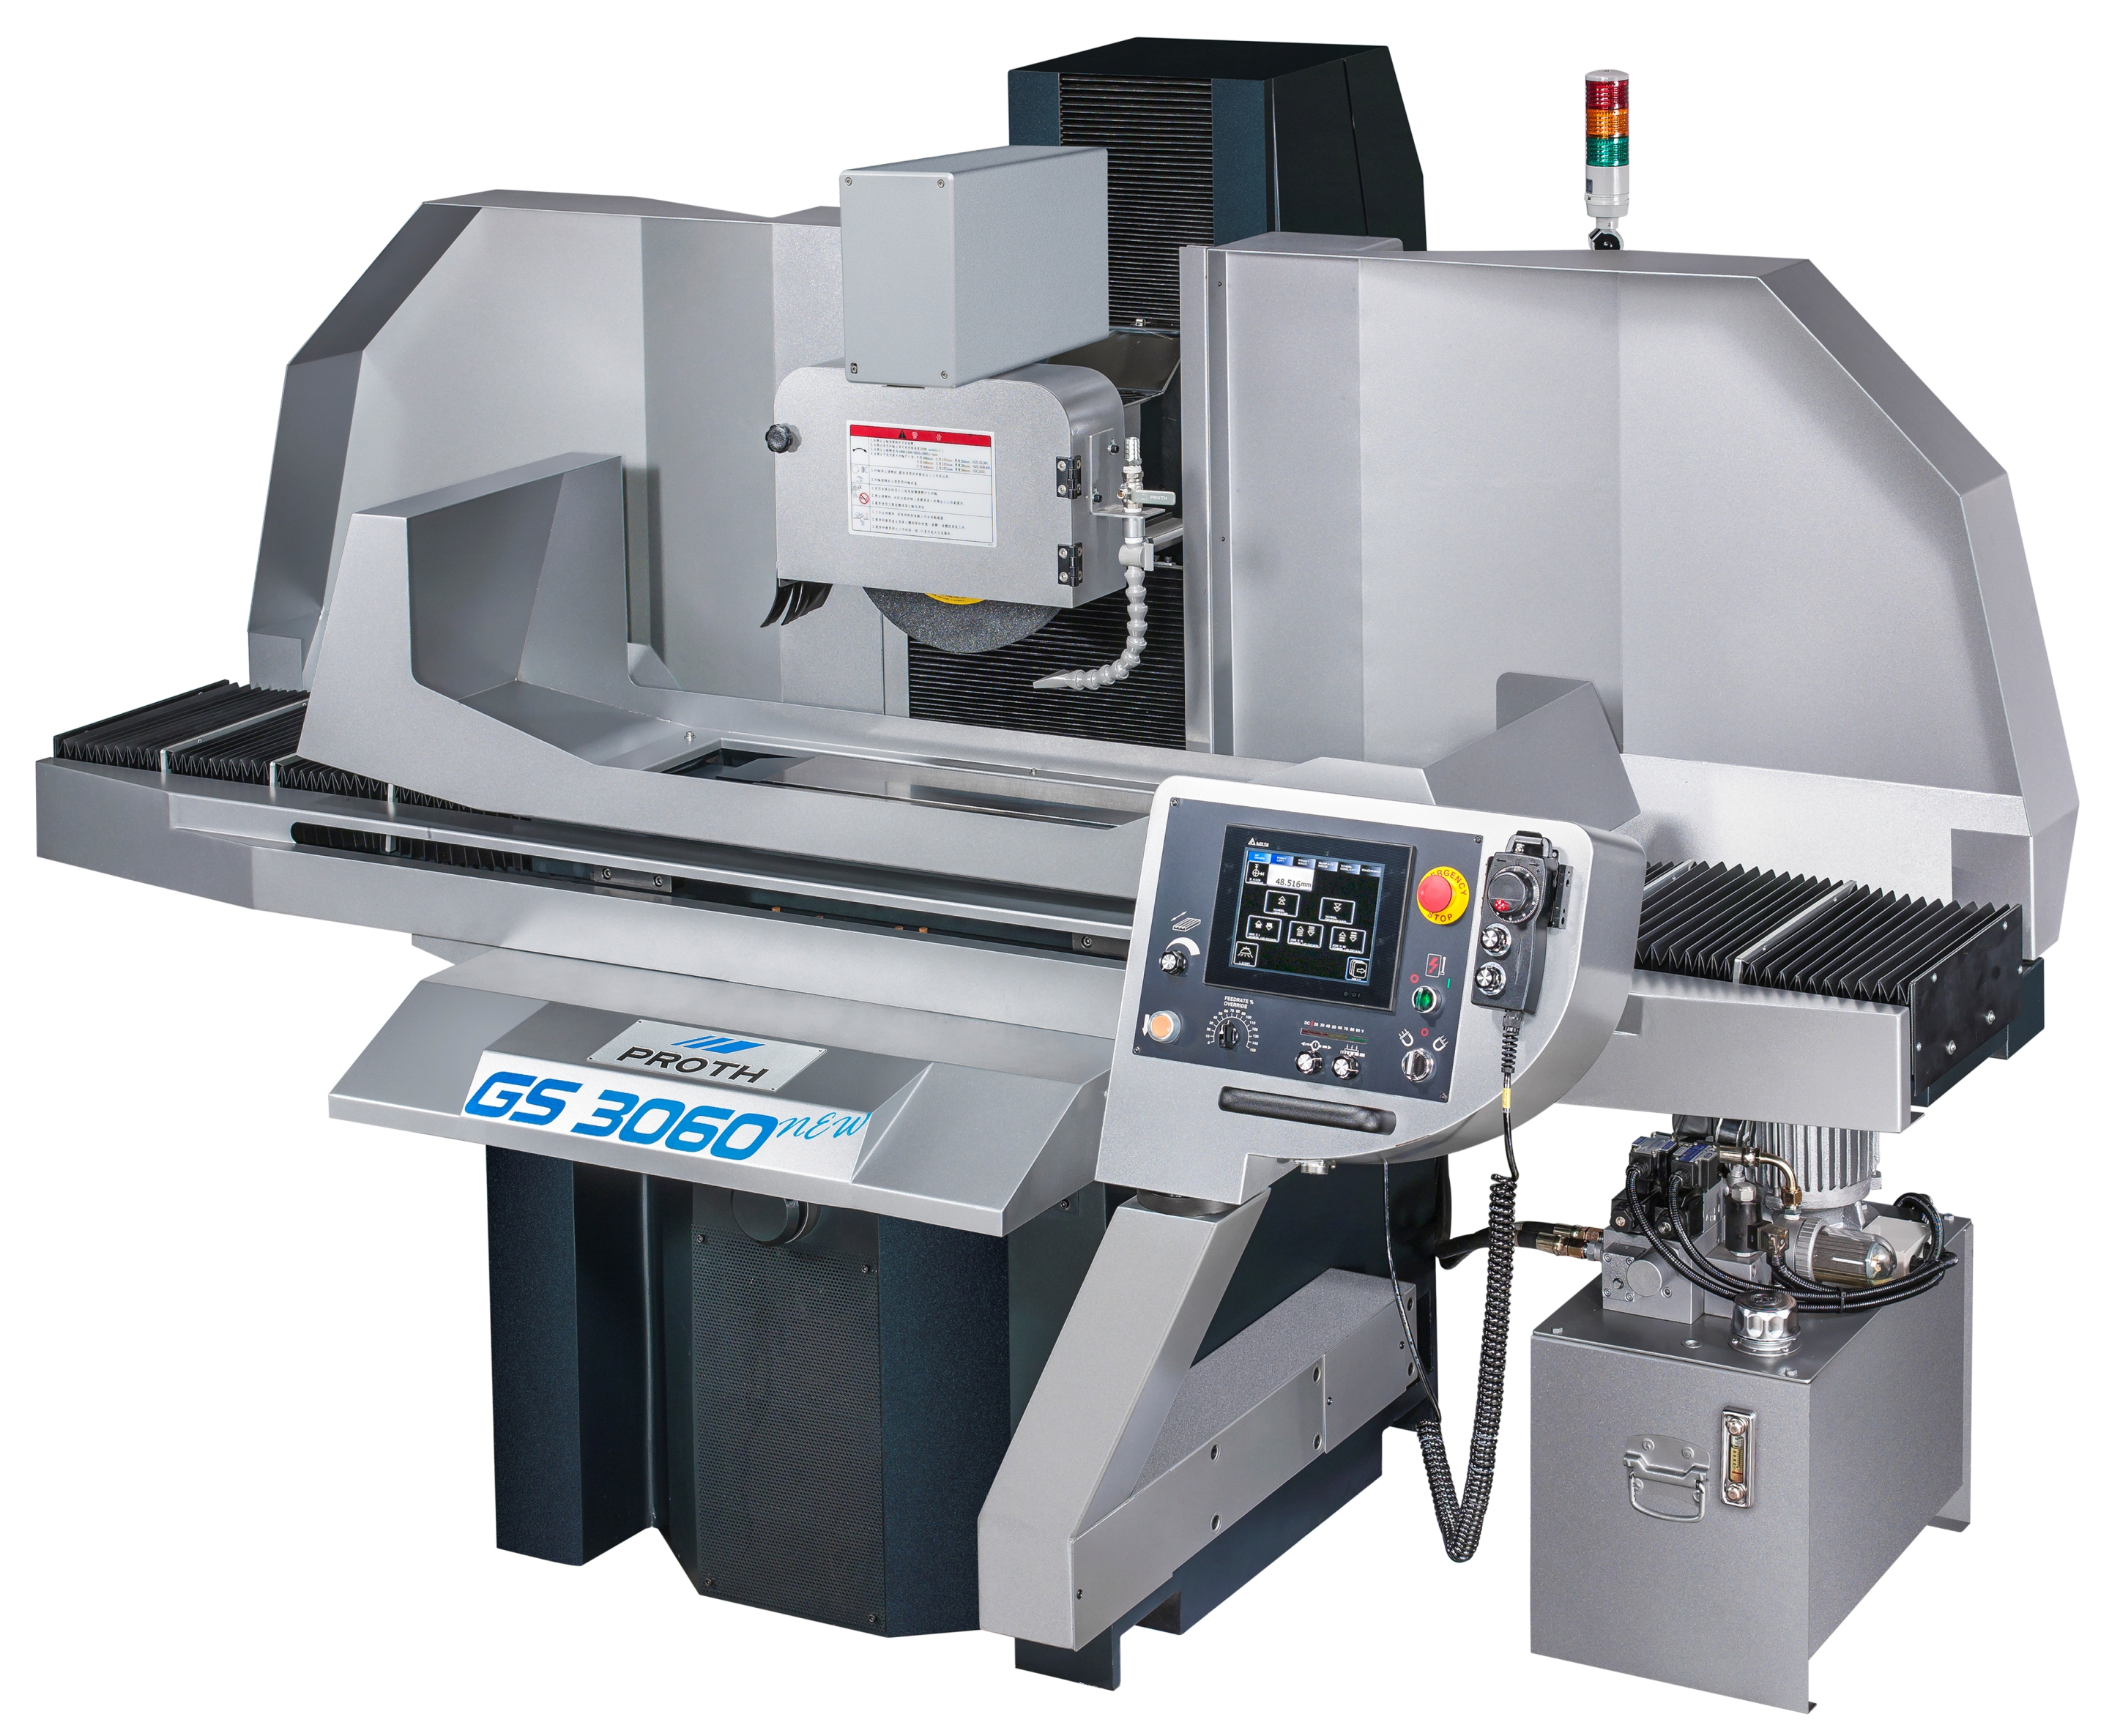 New Saddle Type Surface Grinder : PSGS-3060N/4080N